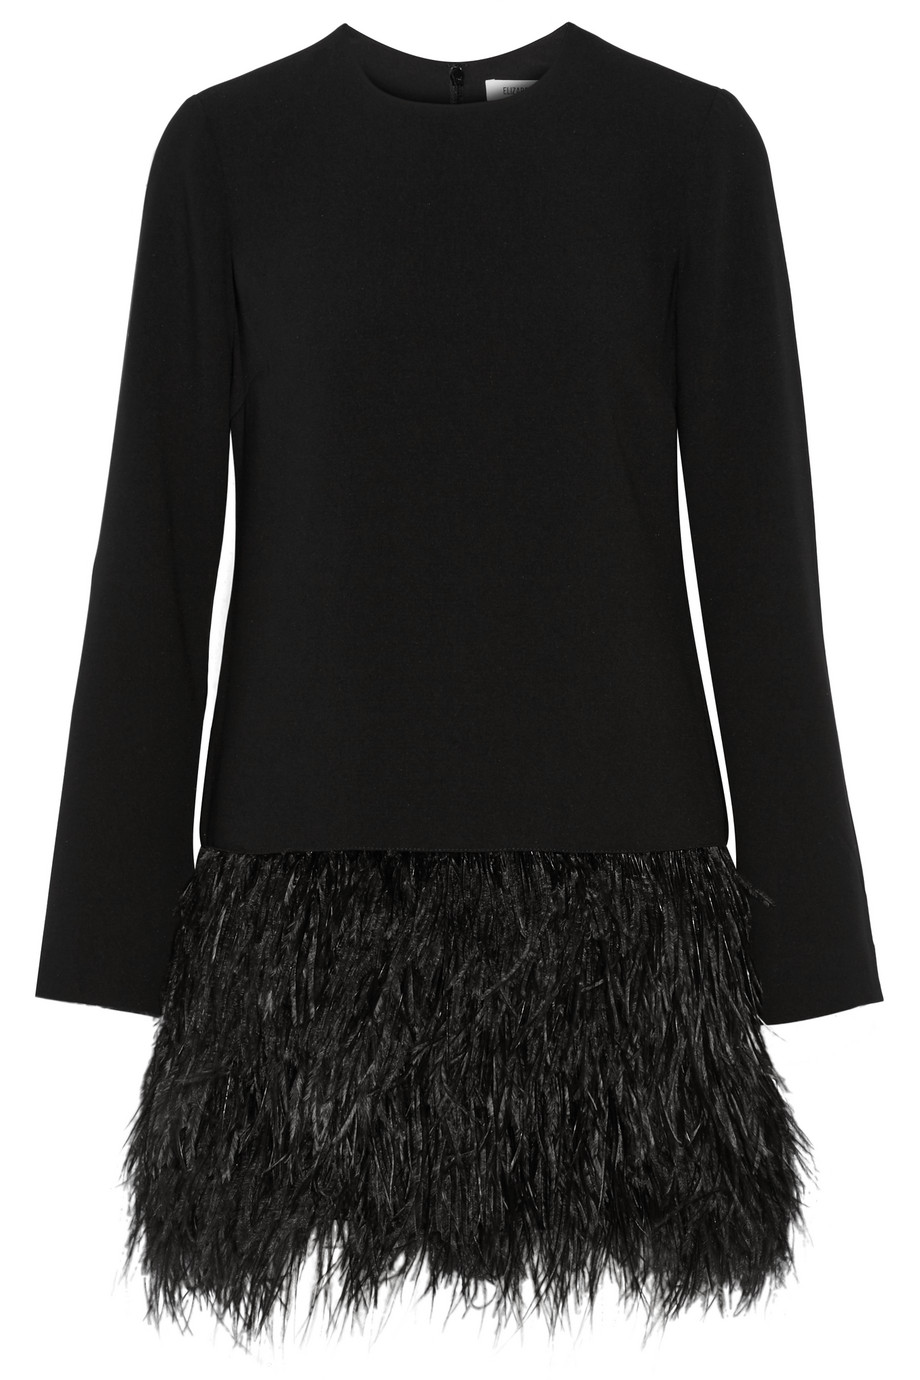 Elizabeth and James Serena Feather-Trimmed Cady Mini Dress, Black, Women's, Size: 8